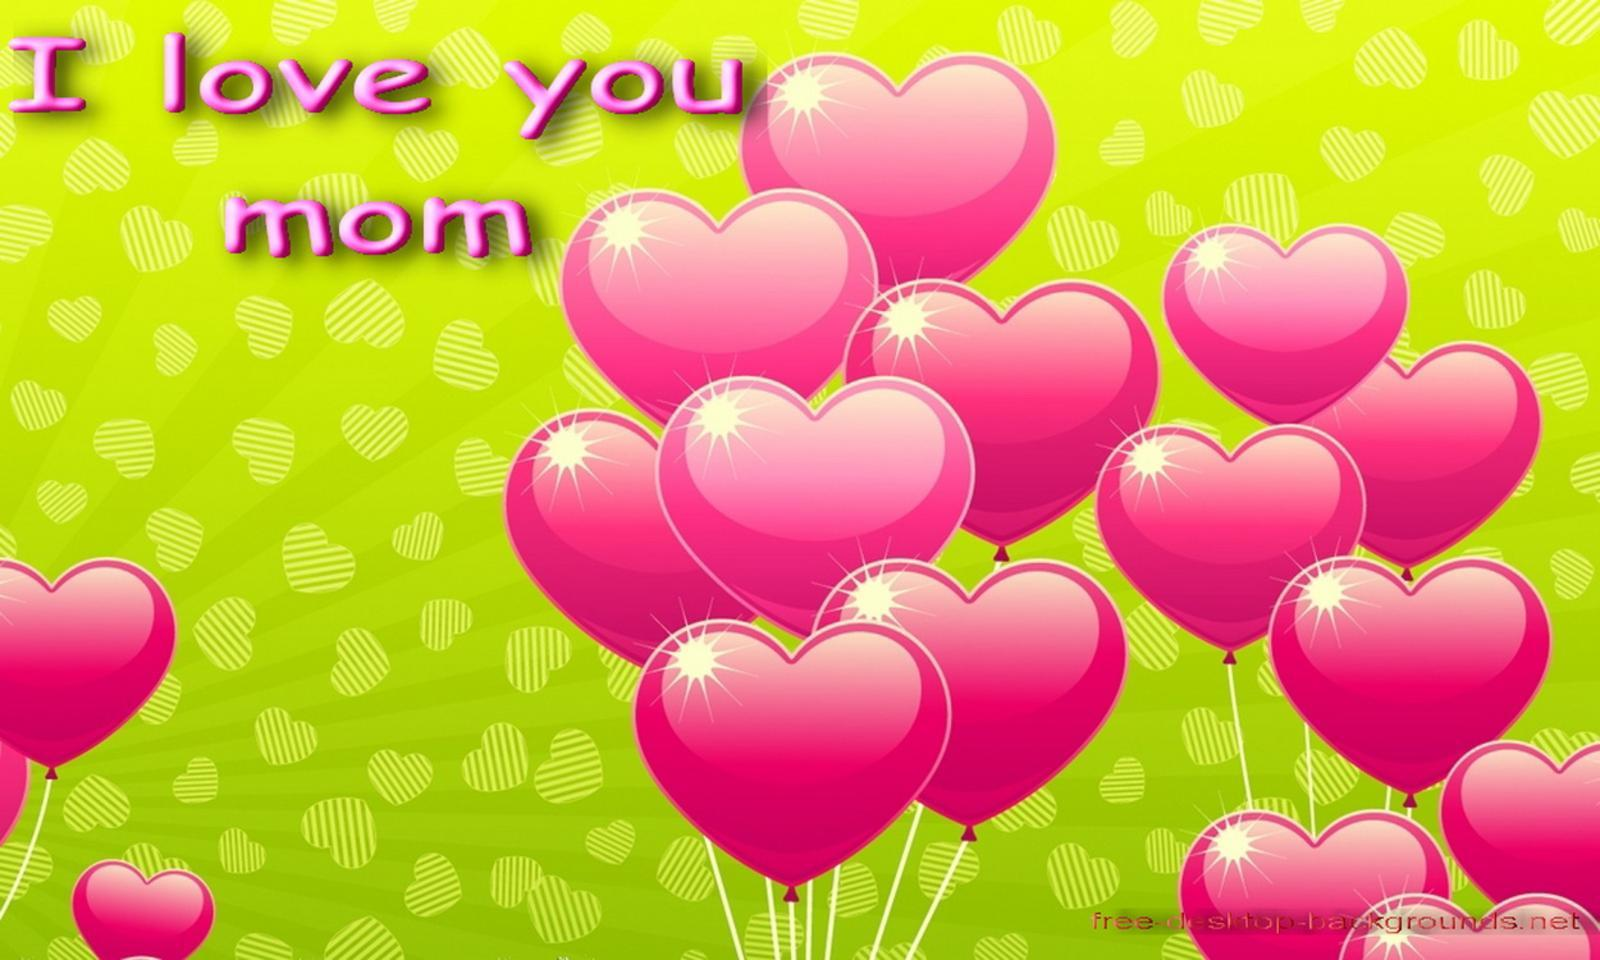 Love You Mom Desktop Wallpapers Desktop Background Wallpapers 1600x960